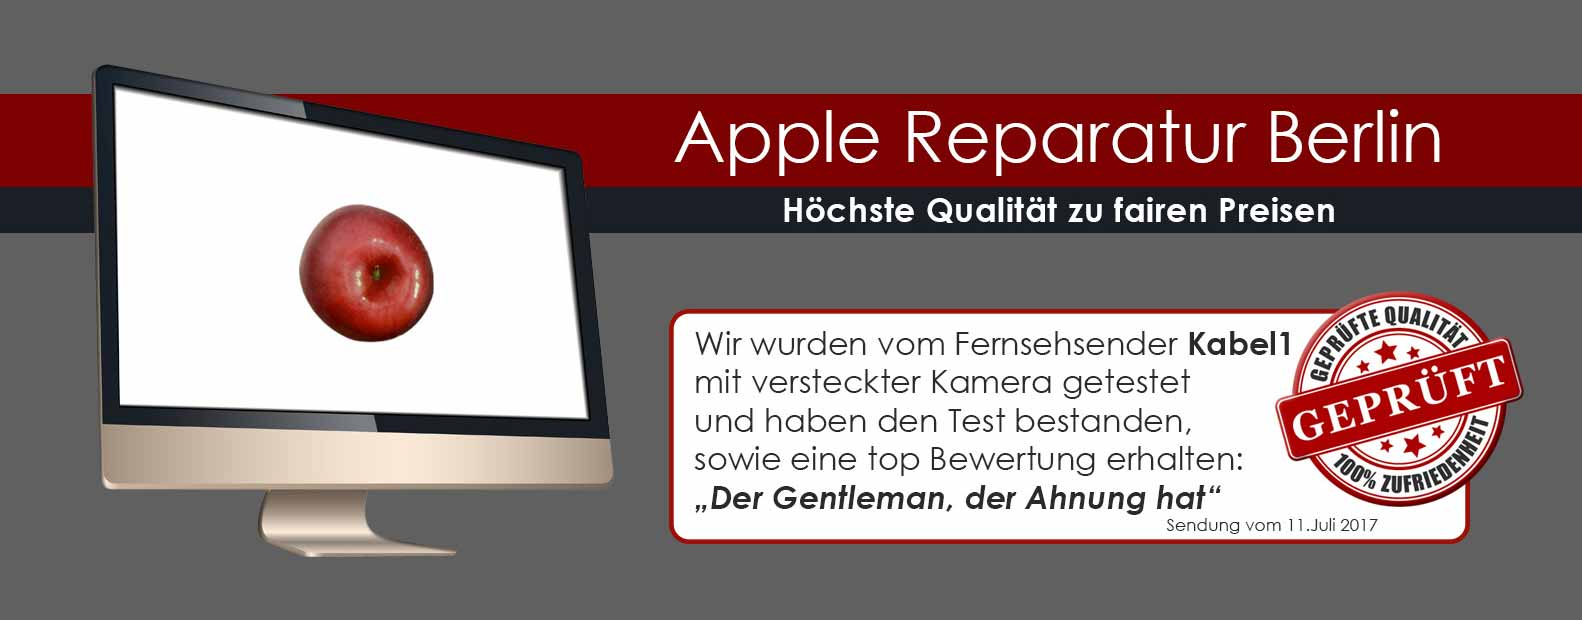 Apple Reparatur Potsdam